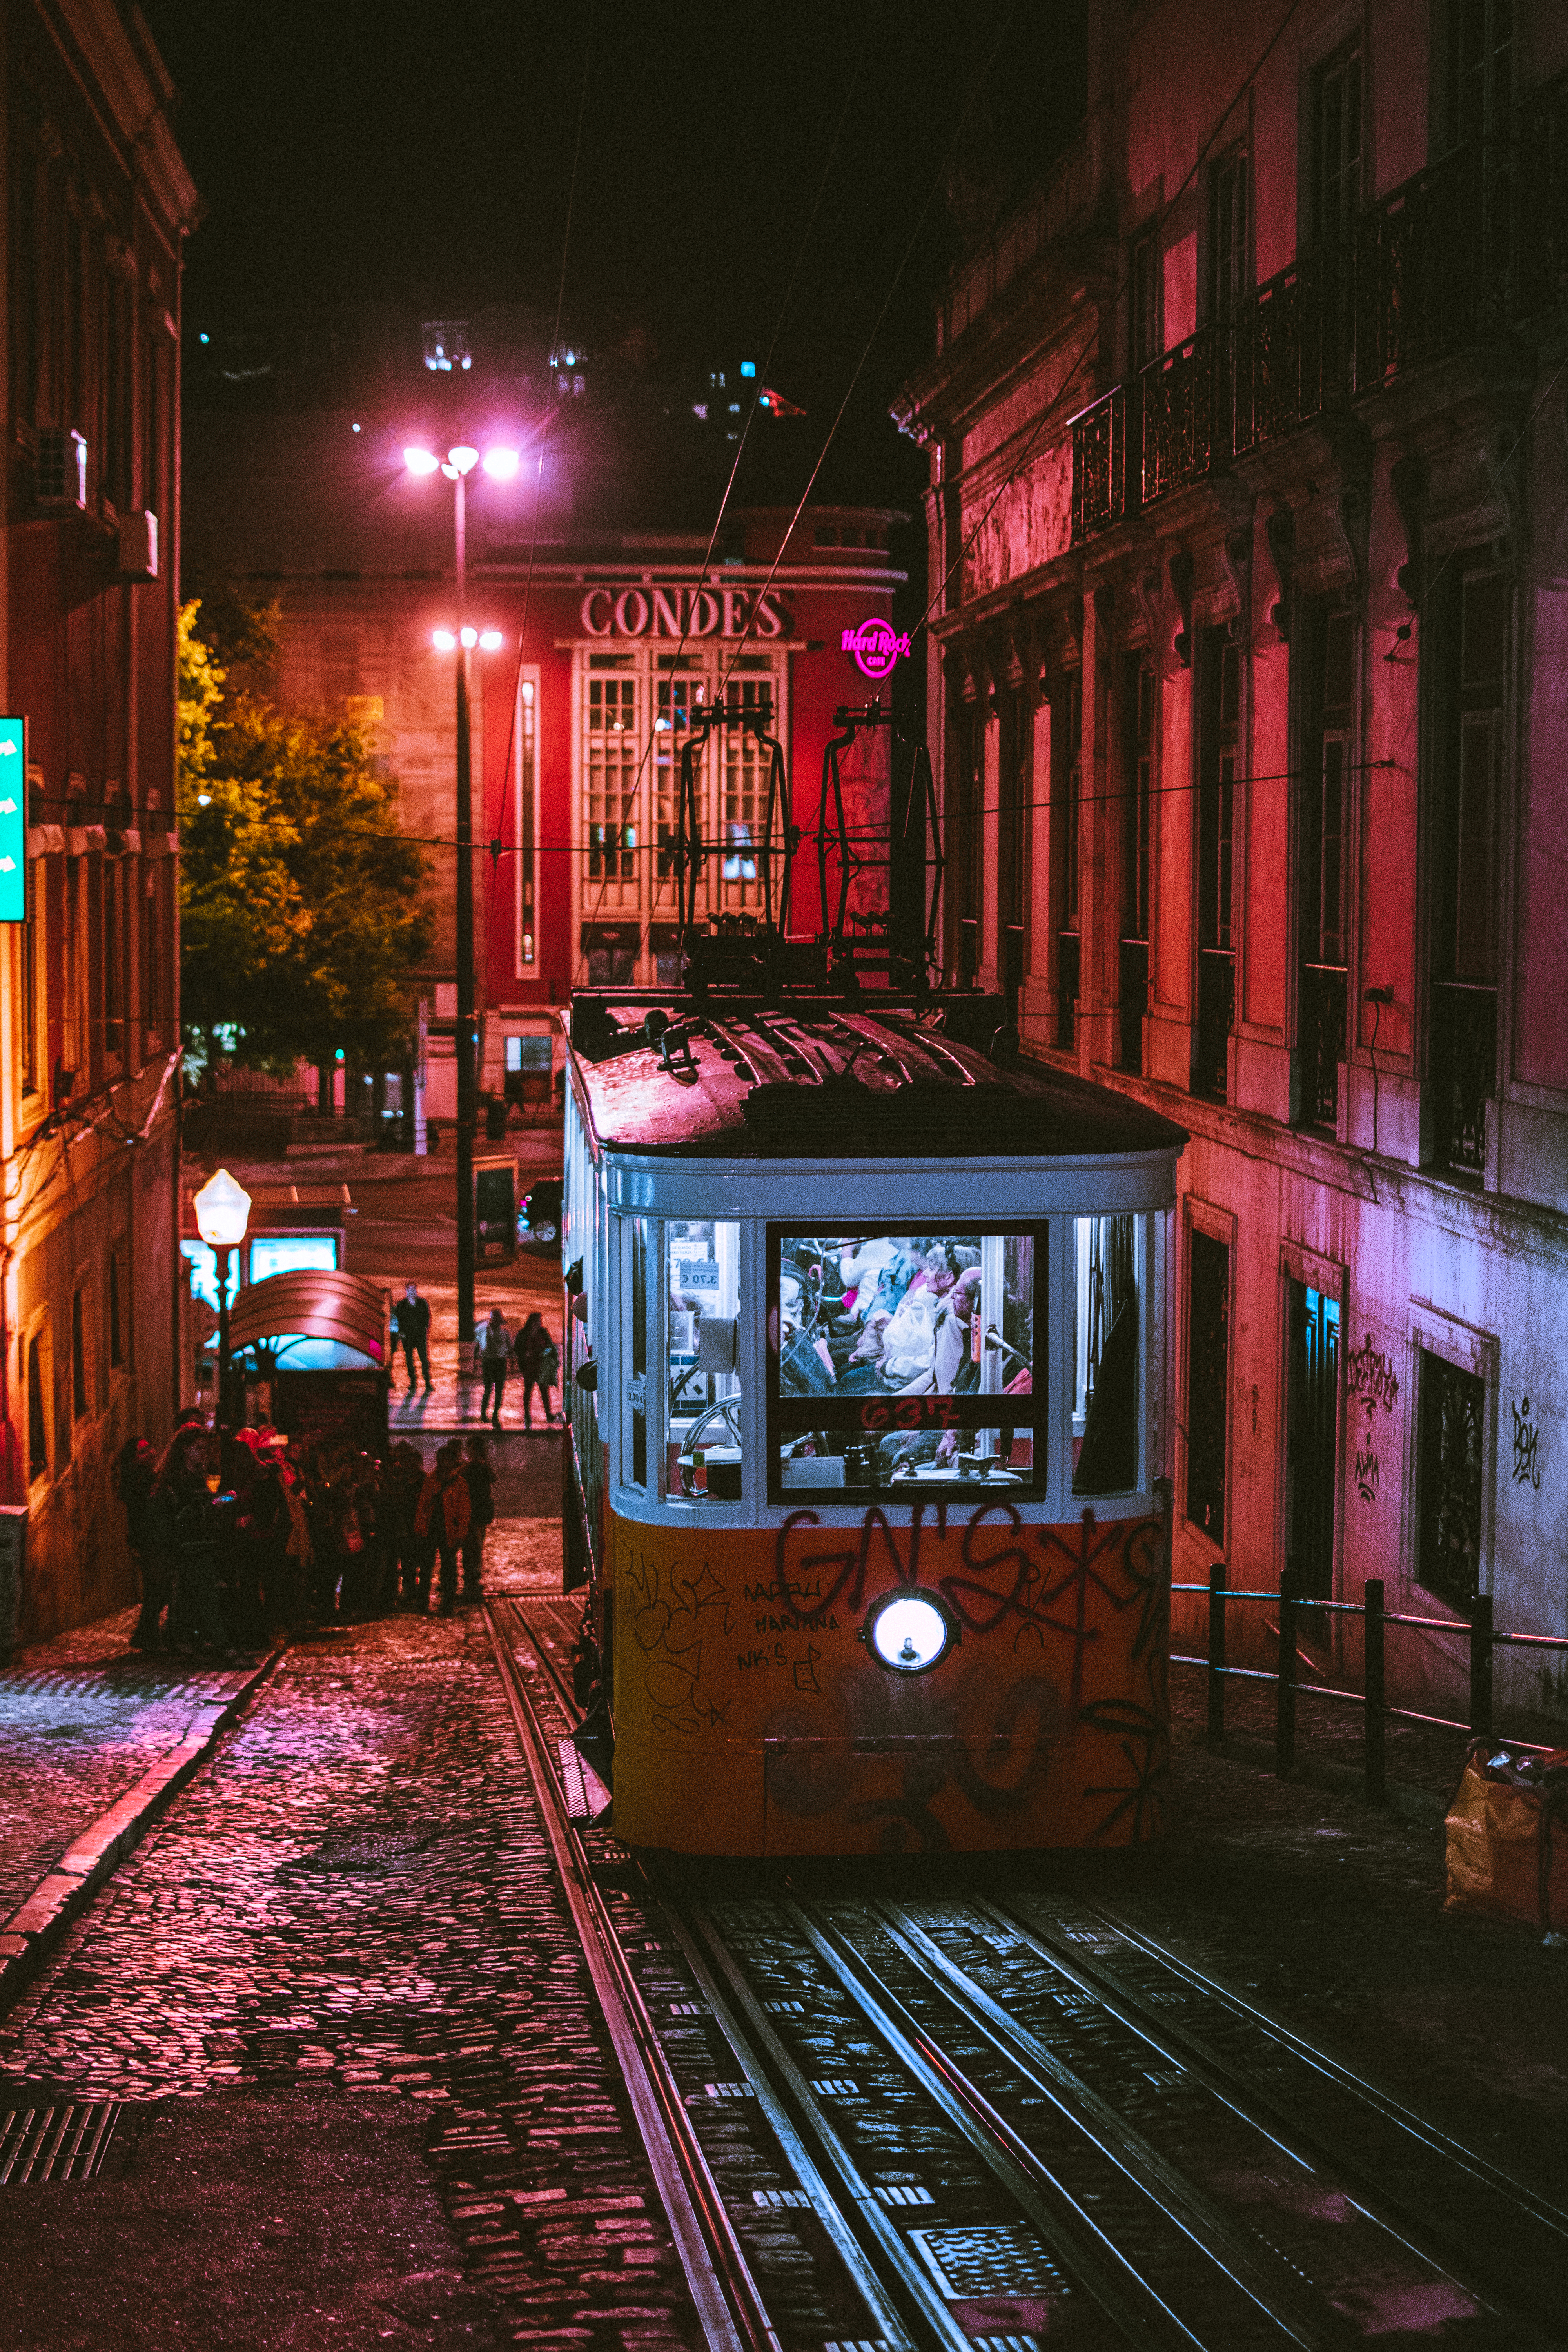 People Riding Tram at Night